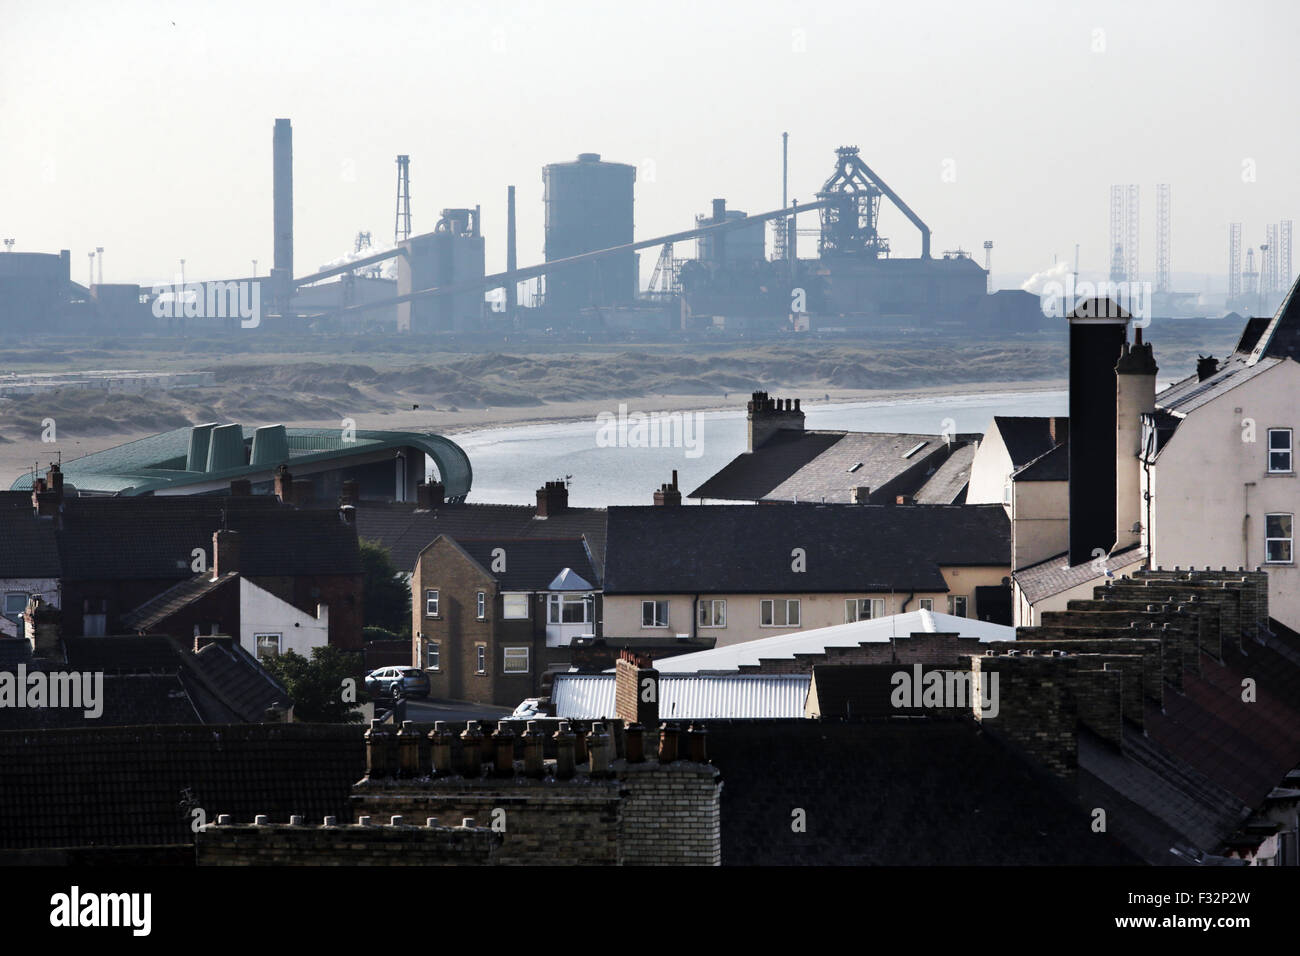 Redcar, UK. 28th September, 2015. The North East town of Redcar with it's steelworks in the background. Owners - Stock Image